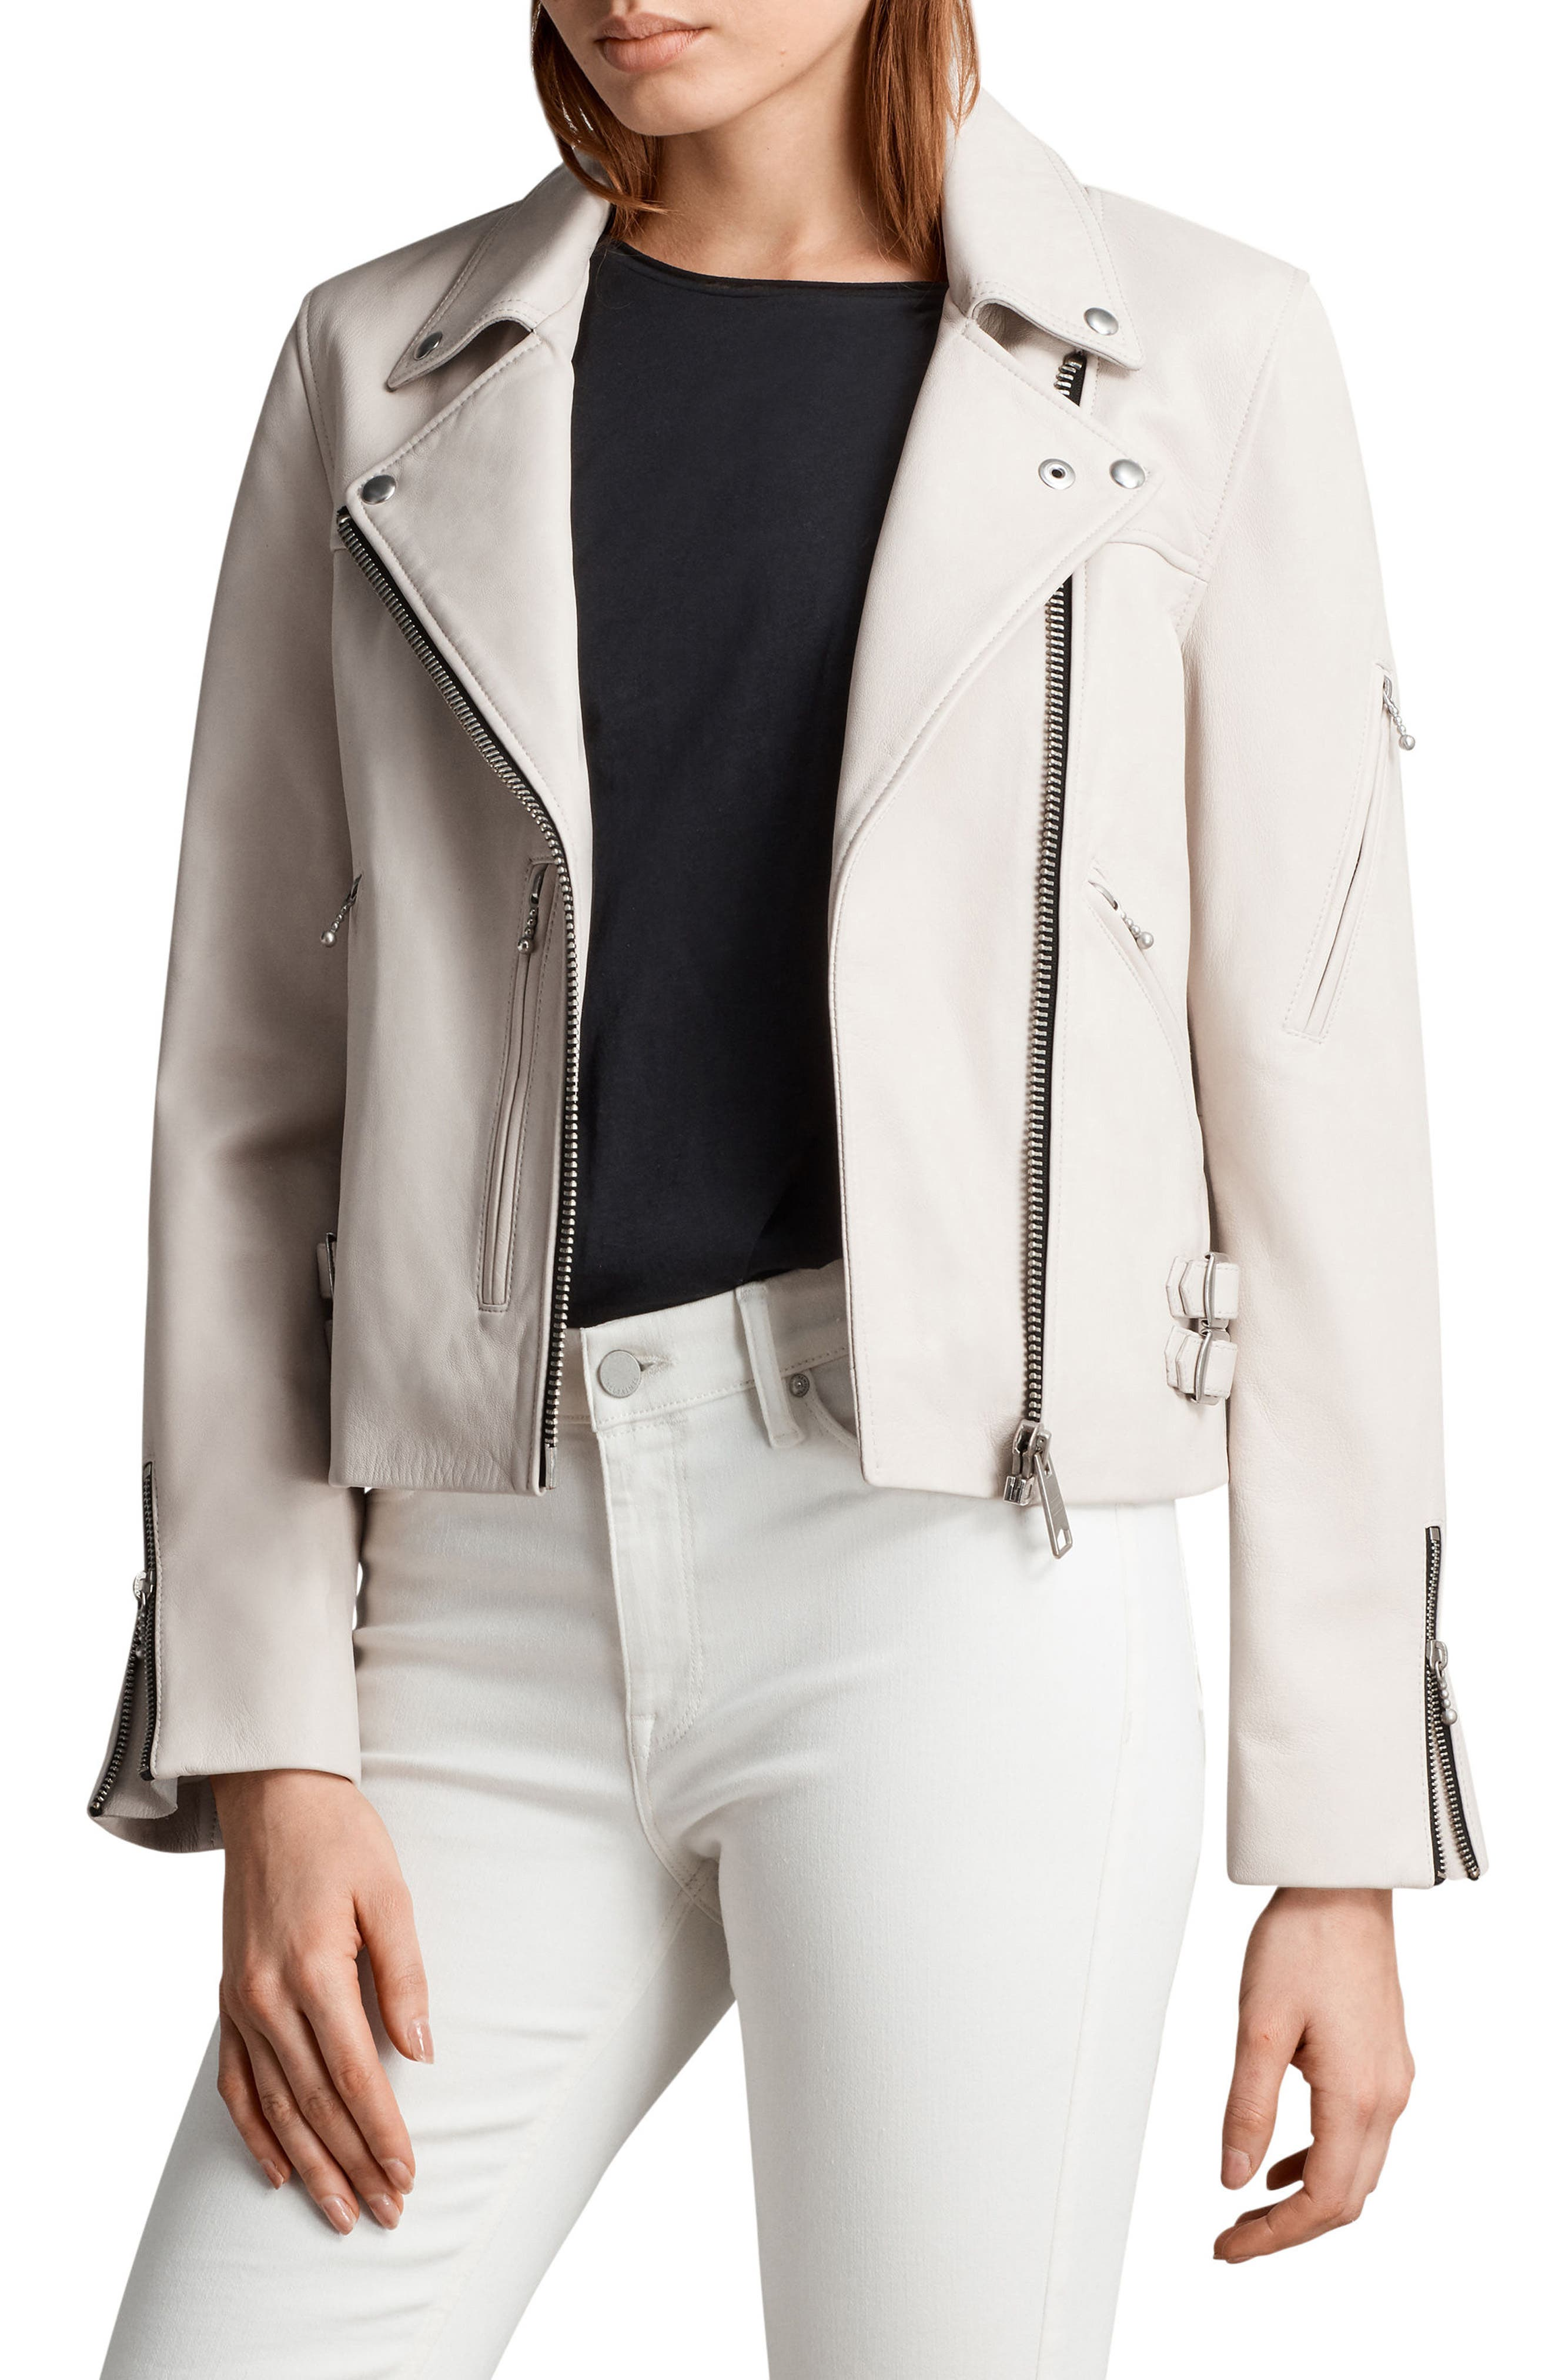 Prescott Leather Biker Jacket by Allsaints